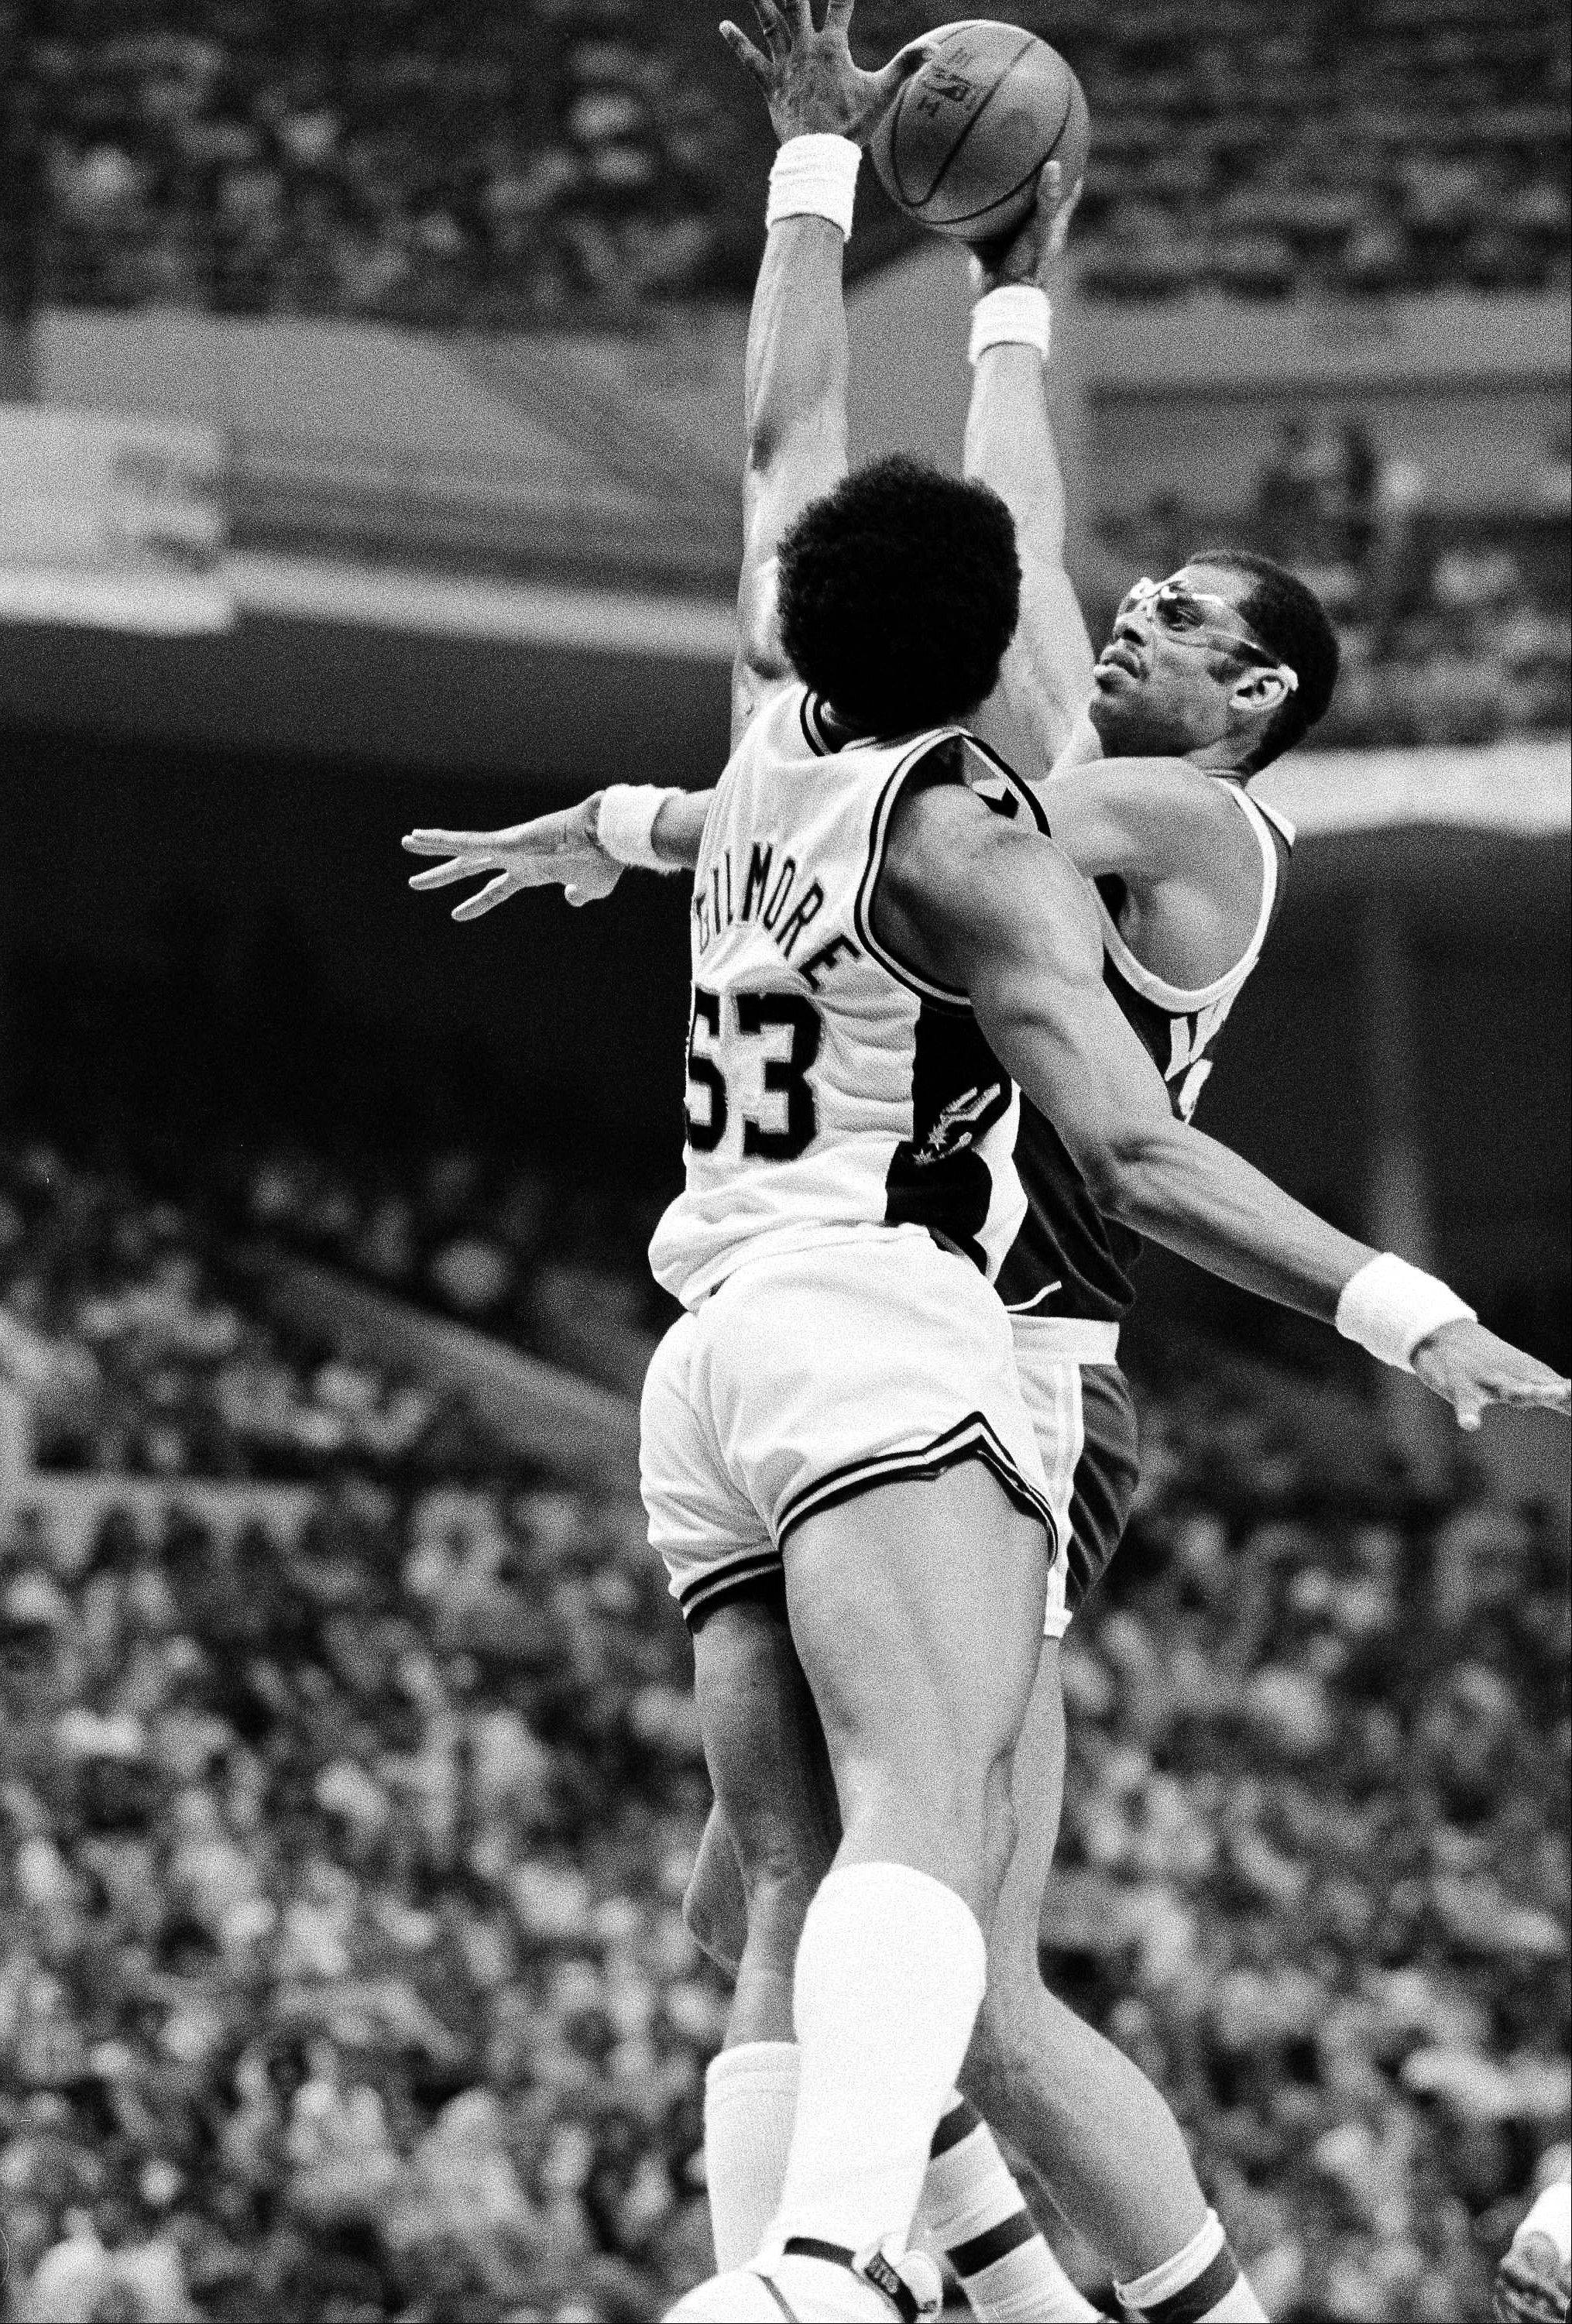 Kareem Abdul-Jabbar (33) of the Los Angeles Lakers goes one on one against Artis Gilmore (53) of the San Antonio Spurs on May 13, 1983, in the first period in San Antonio. It is the third game in the best of seven Western Conference finals.